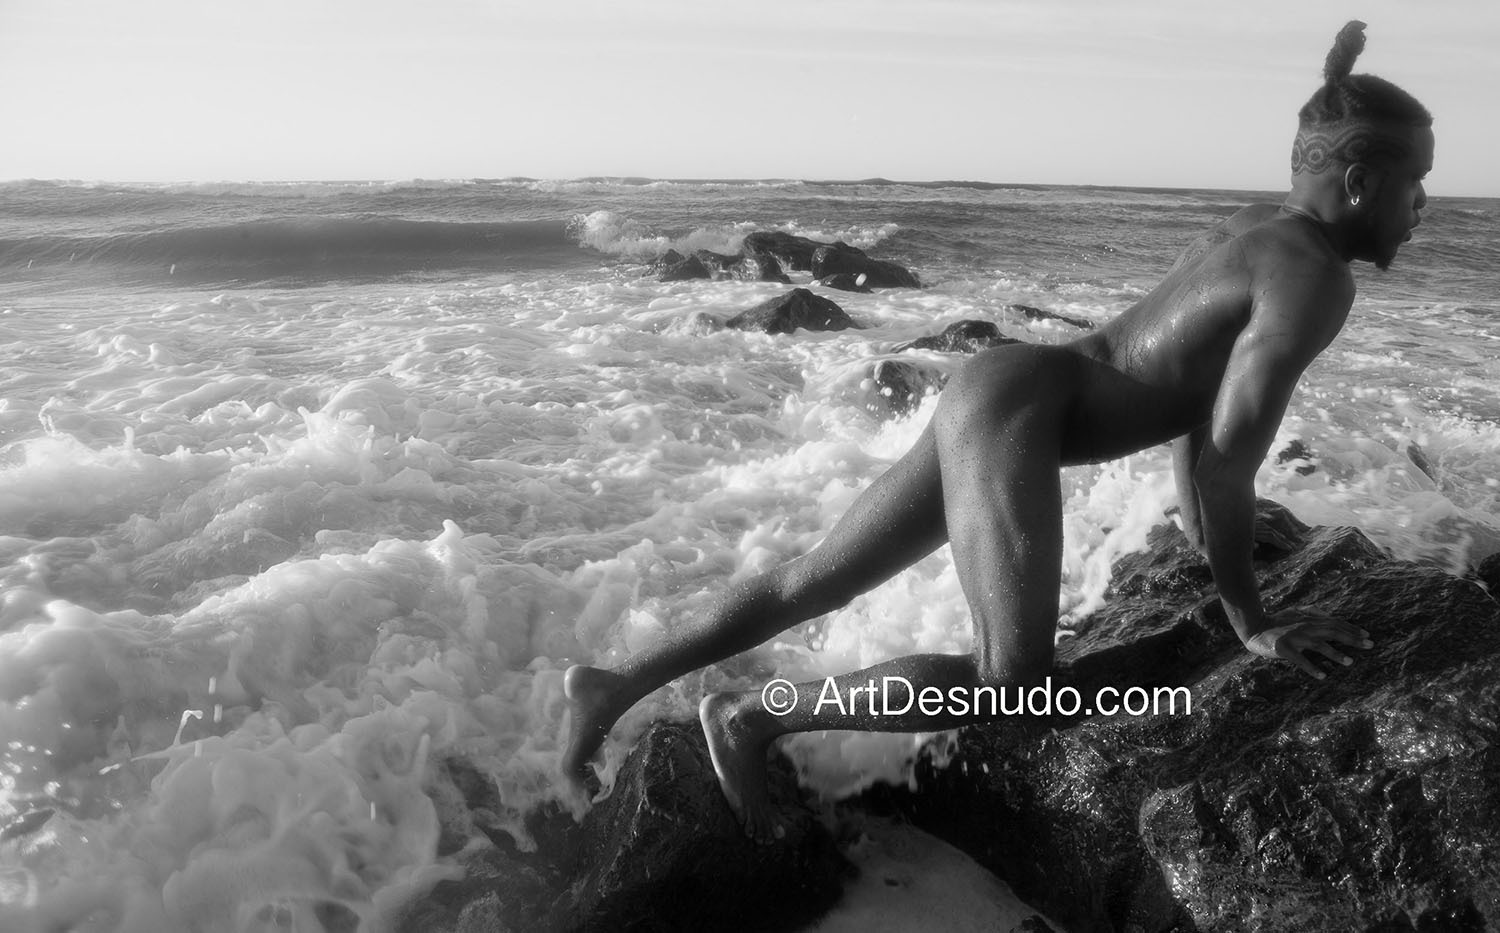 """It was a great day to create art in """"The City that Never Sleeps (New York City)."""" This model got naked for art and got free photographs. You can do it, too! Photo by ArtDesnudo.com"""